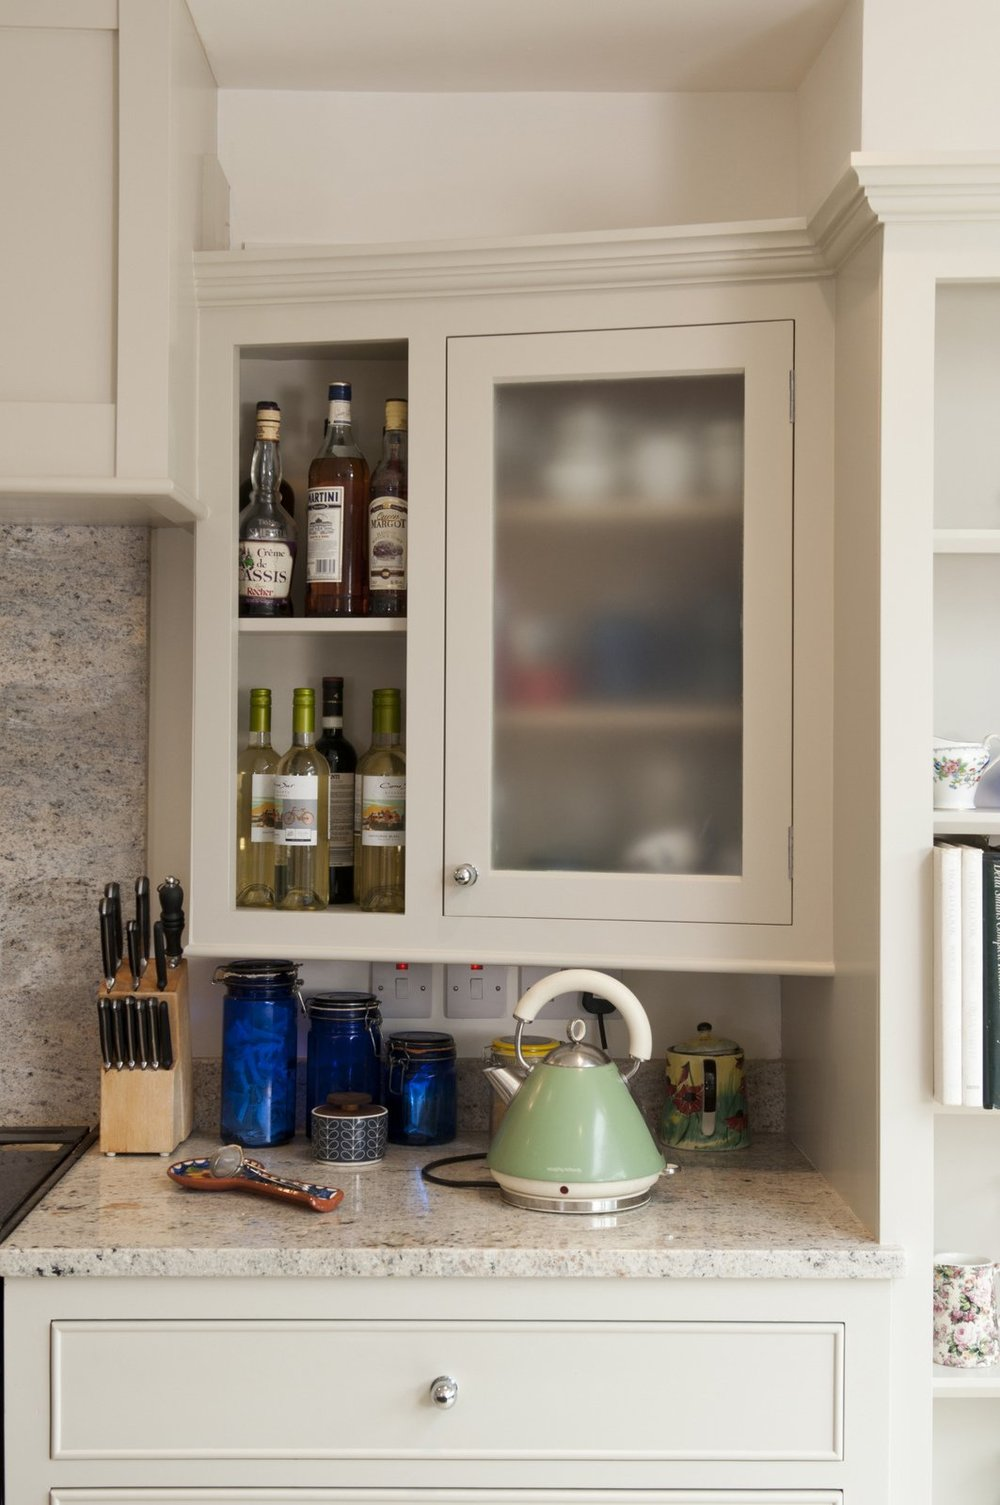 bespoke kitchen shelving.jpg